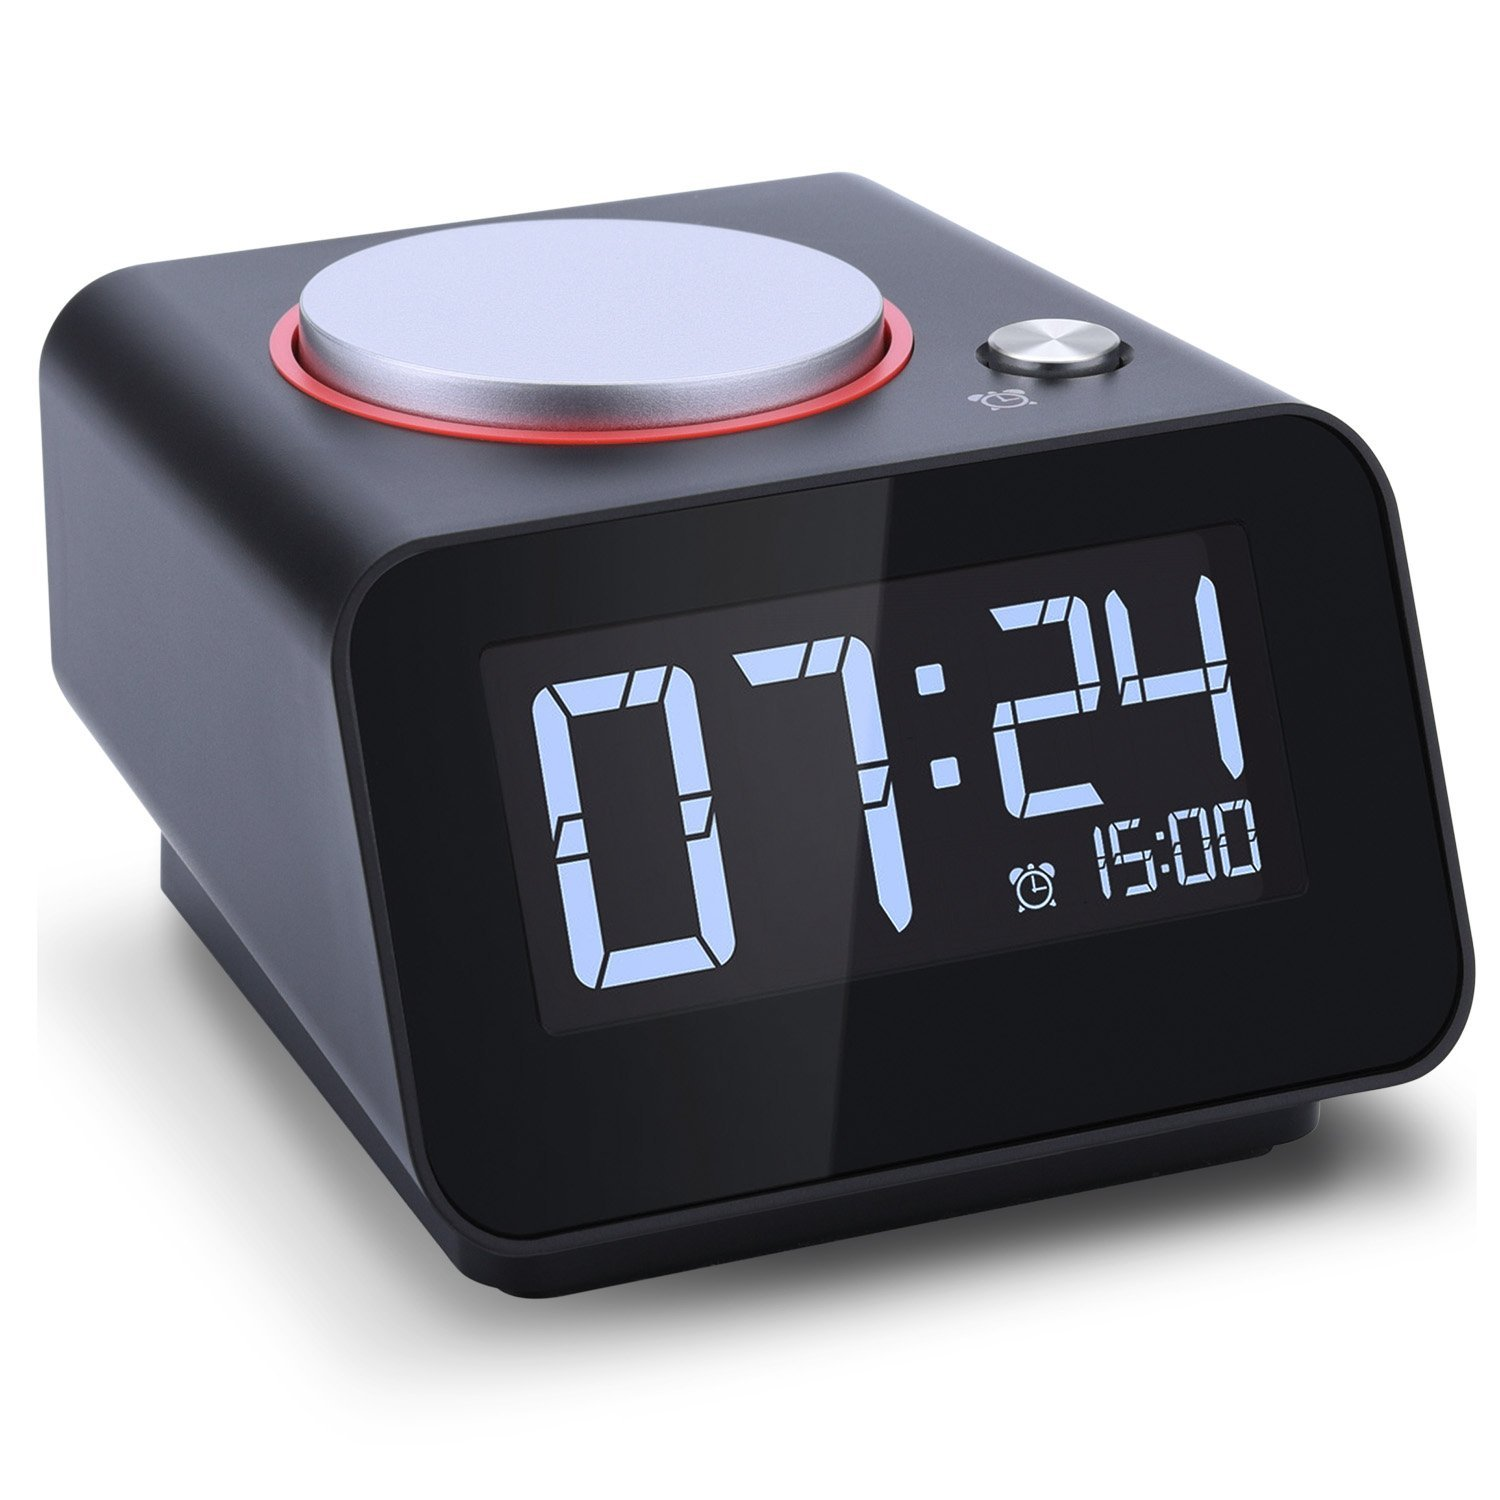 Alarm Clock with USB Charger,Dual USB Charging Port for IPhone and Android with Snooze and 4 Dimmable Funtion (Black)